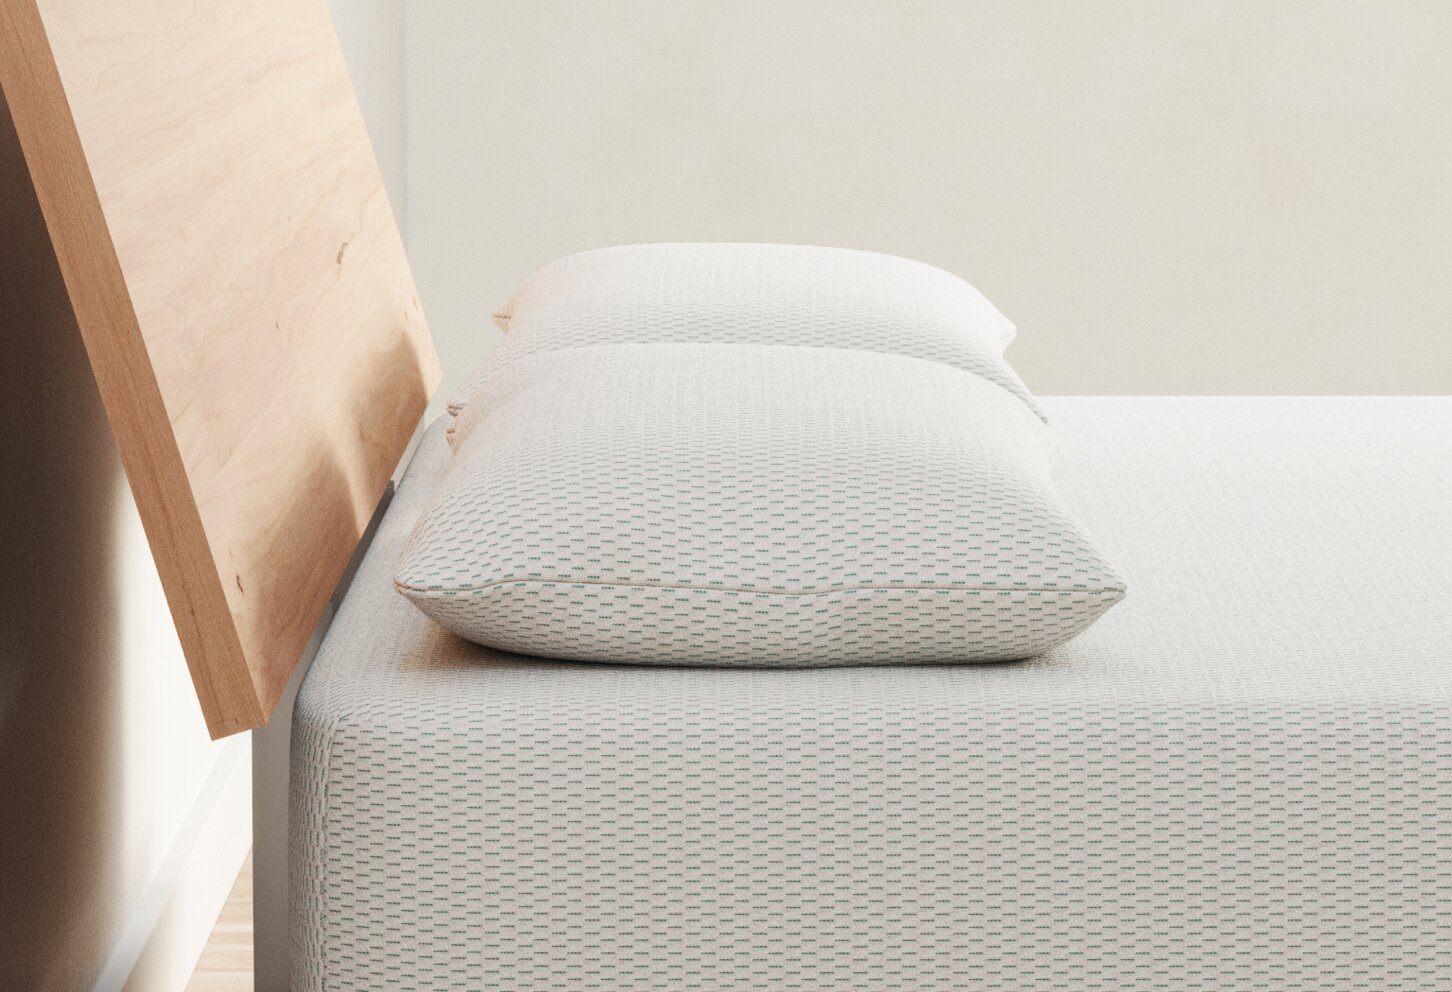 Vaya pillow bed-side view